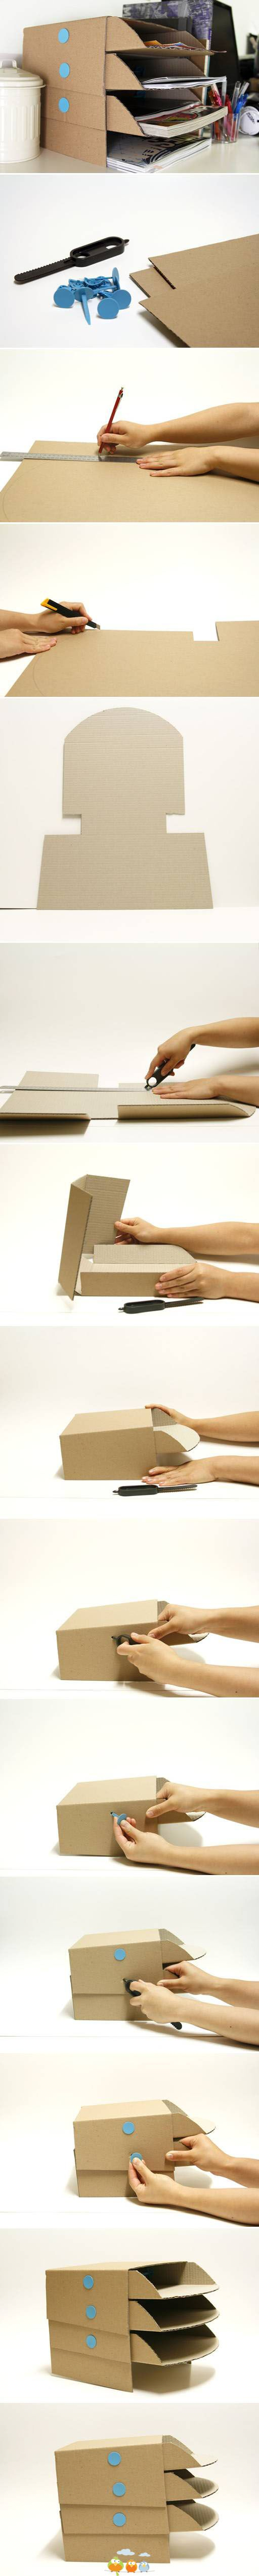 craft from cardboard boxes for office or craft room